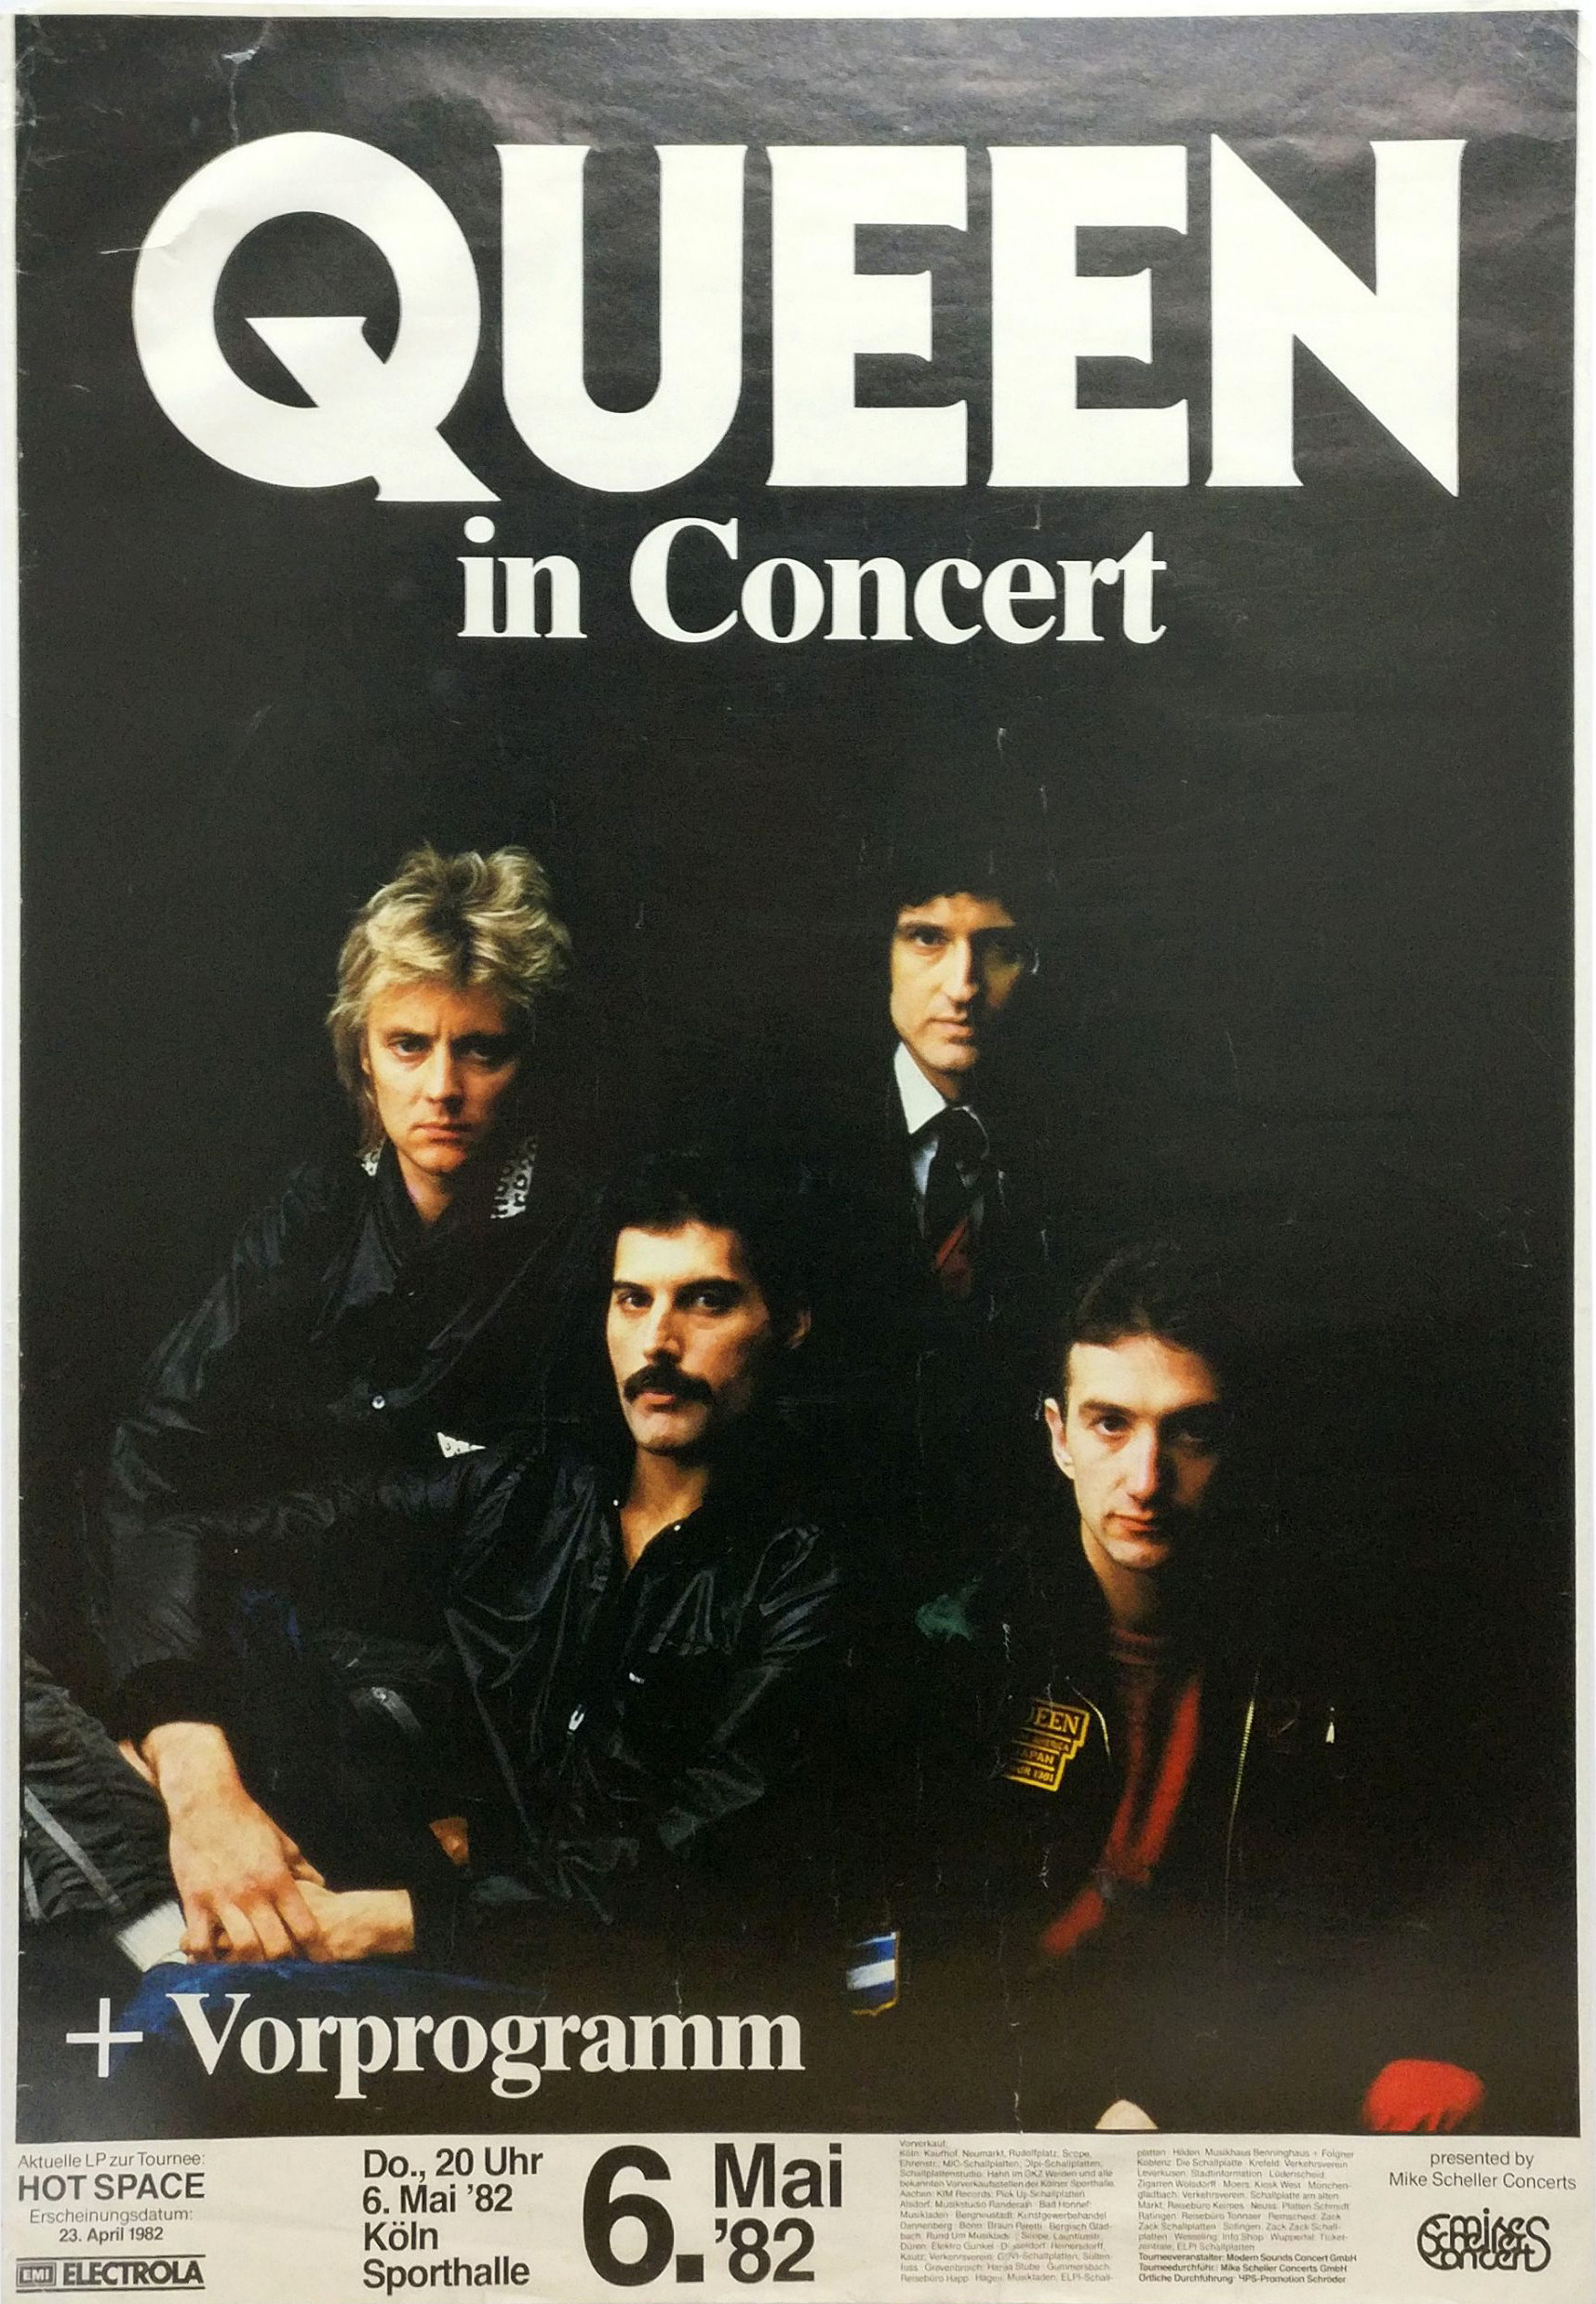 Queen in Cologne on 06.05.1982